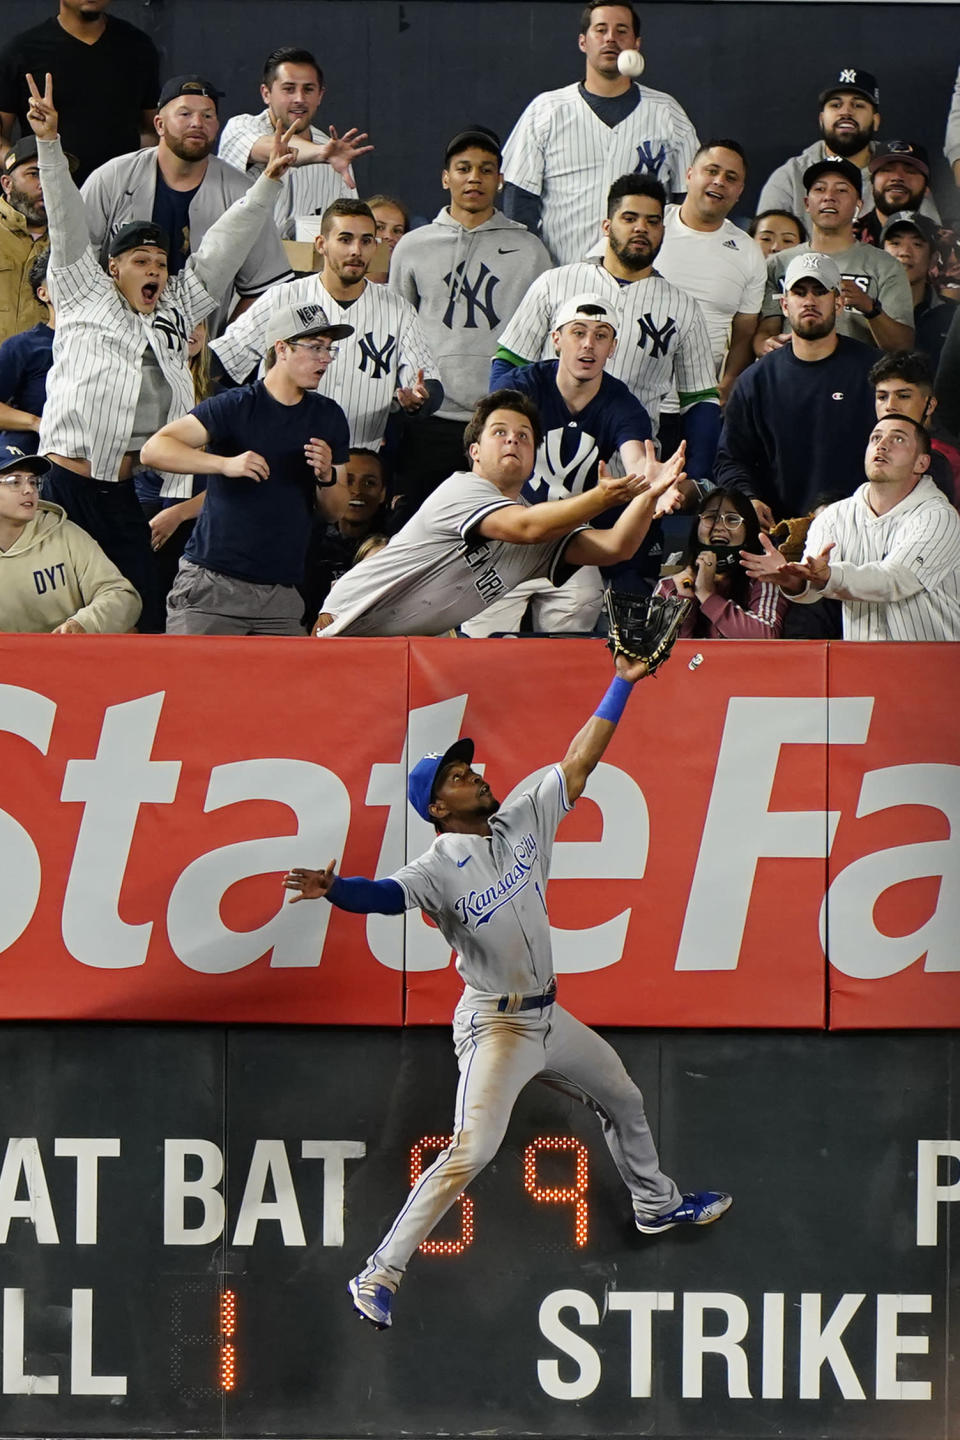 RETRANSMISSION TO CORRECT FROM DOUBLE TO TRIPLE - Kansas City Royals left fielder Jarrod Dyson (1) leaps for New York Yankees Luke Voit's seventh inning triple as fans reach for it in a baseball game Tuesday, June 22, 2021, at Yankee Stadium in New York. (AP Photo/Kathy Willens)